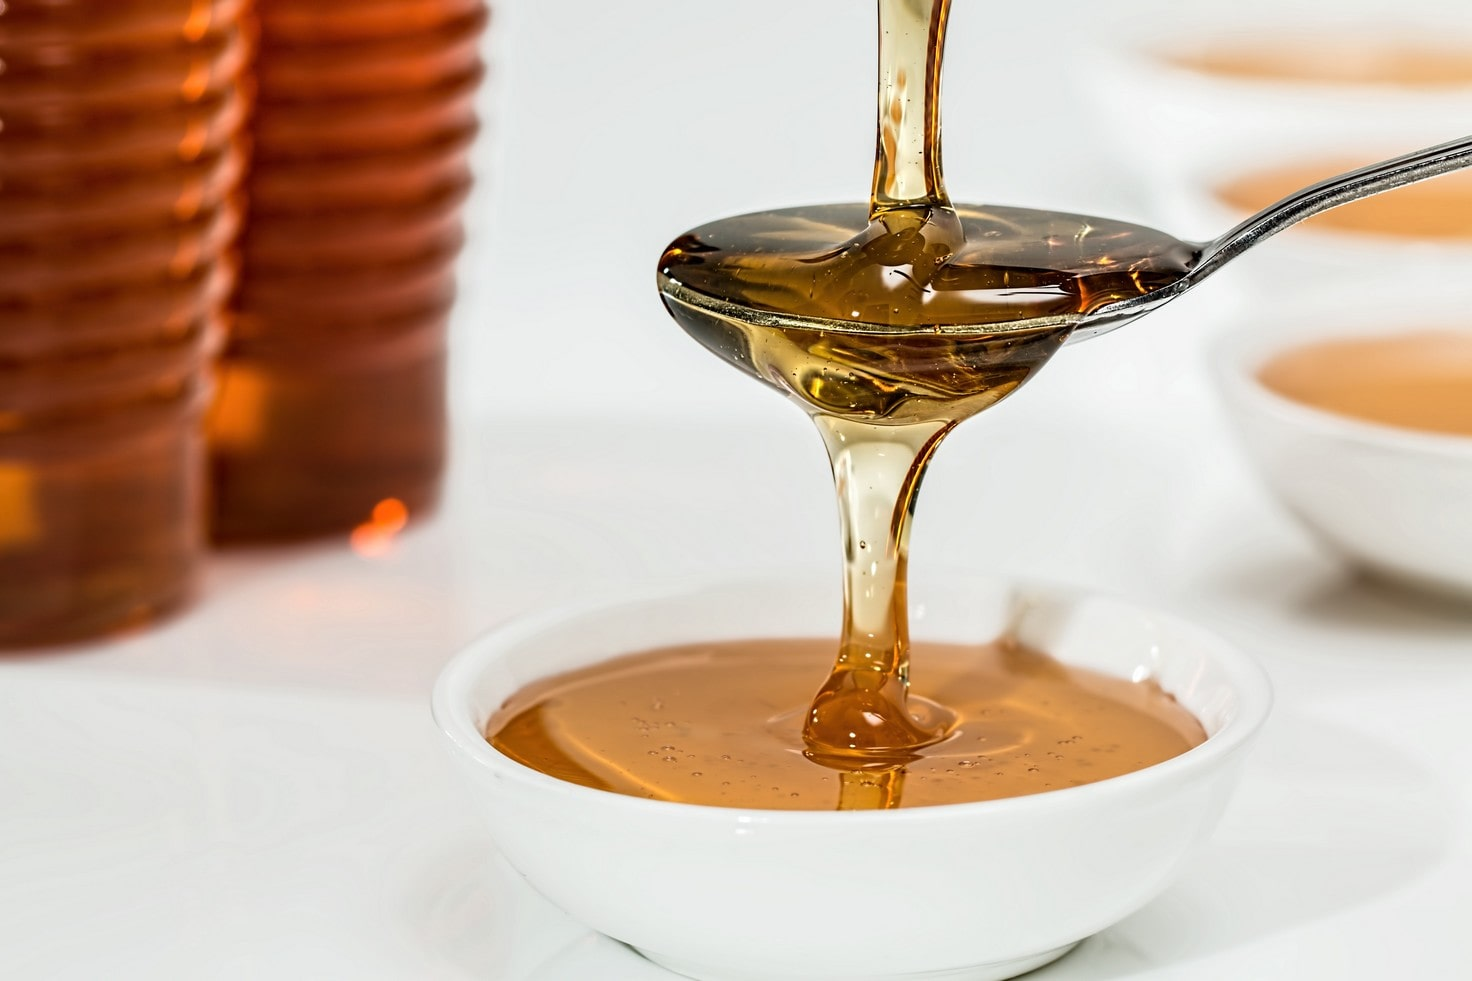 acne scars can improve with raw honey, pictured being poured onto a spoon and overflowing into a white bowl below.